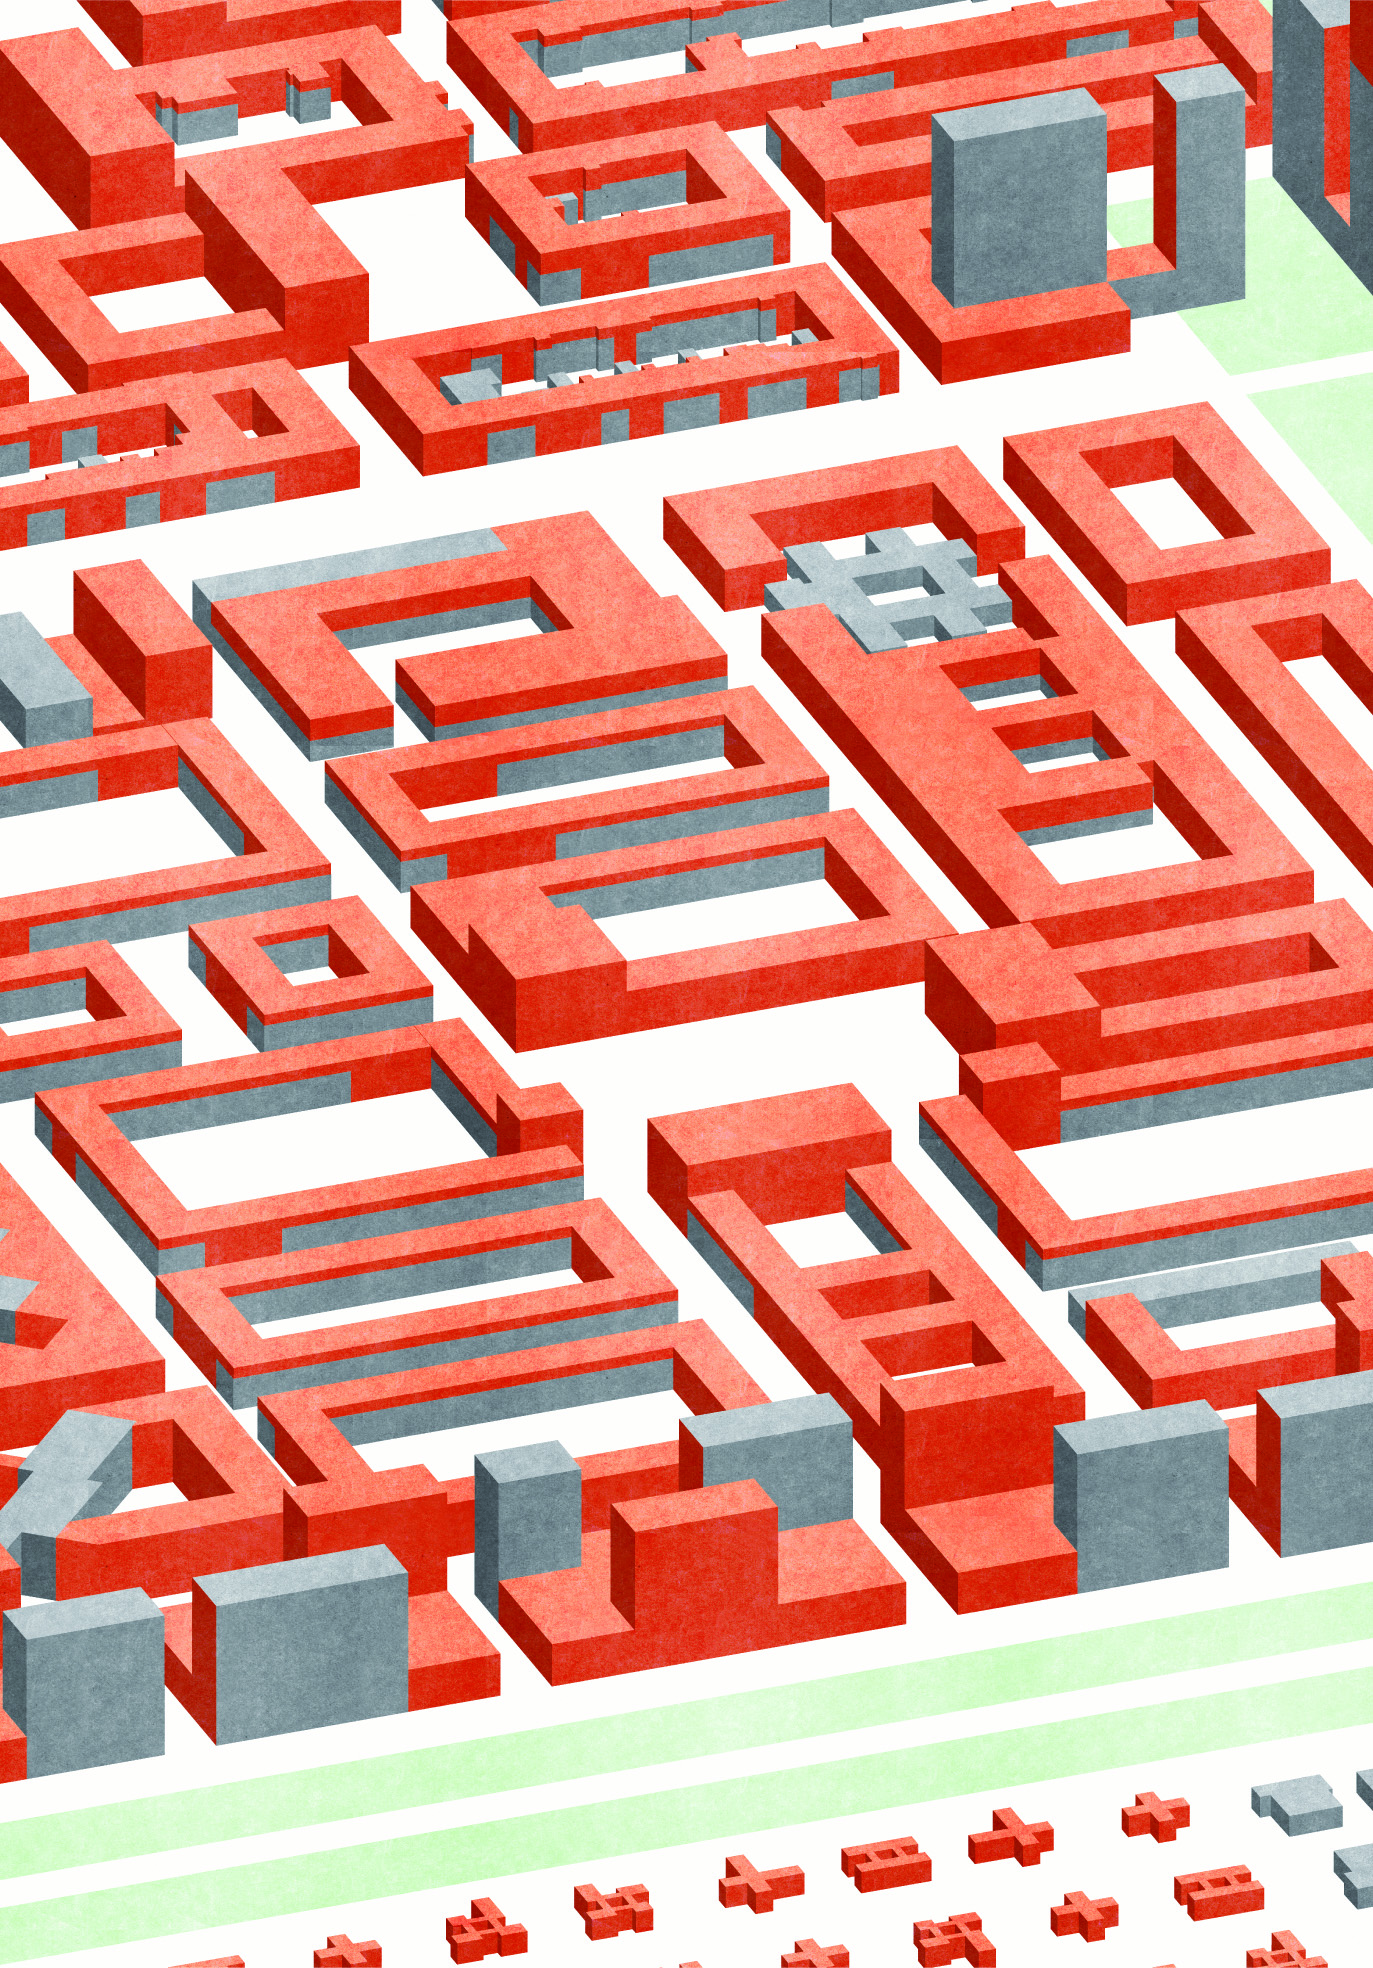 New Urban Inside Spaces: blocks, streets and squares